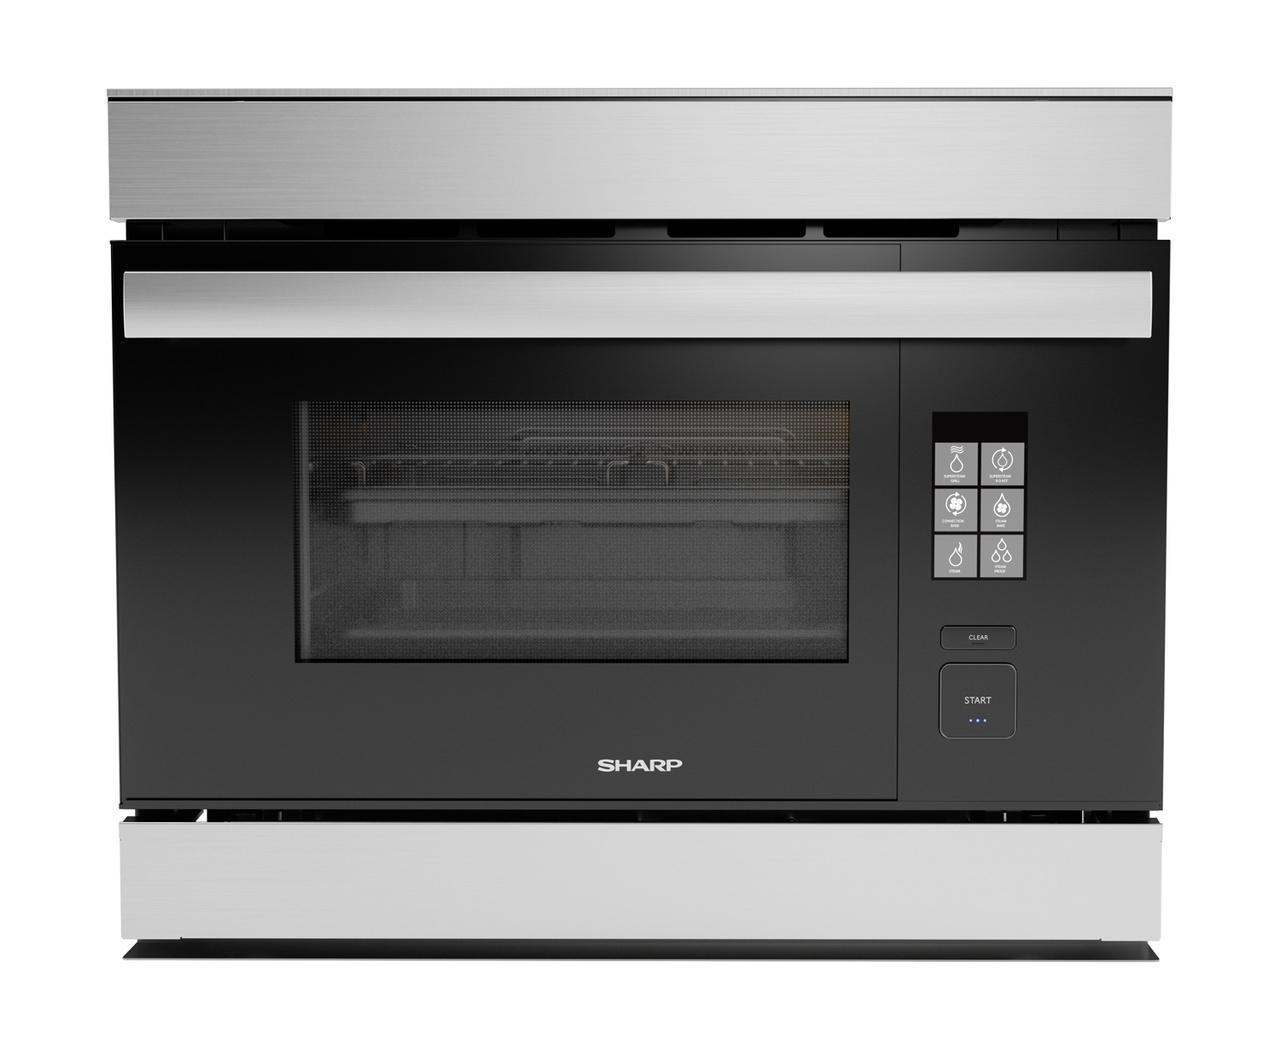 SharpSharp Supersteam+ Smart Superheated Steam And Convection Built-In Wall Oven